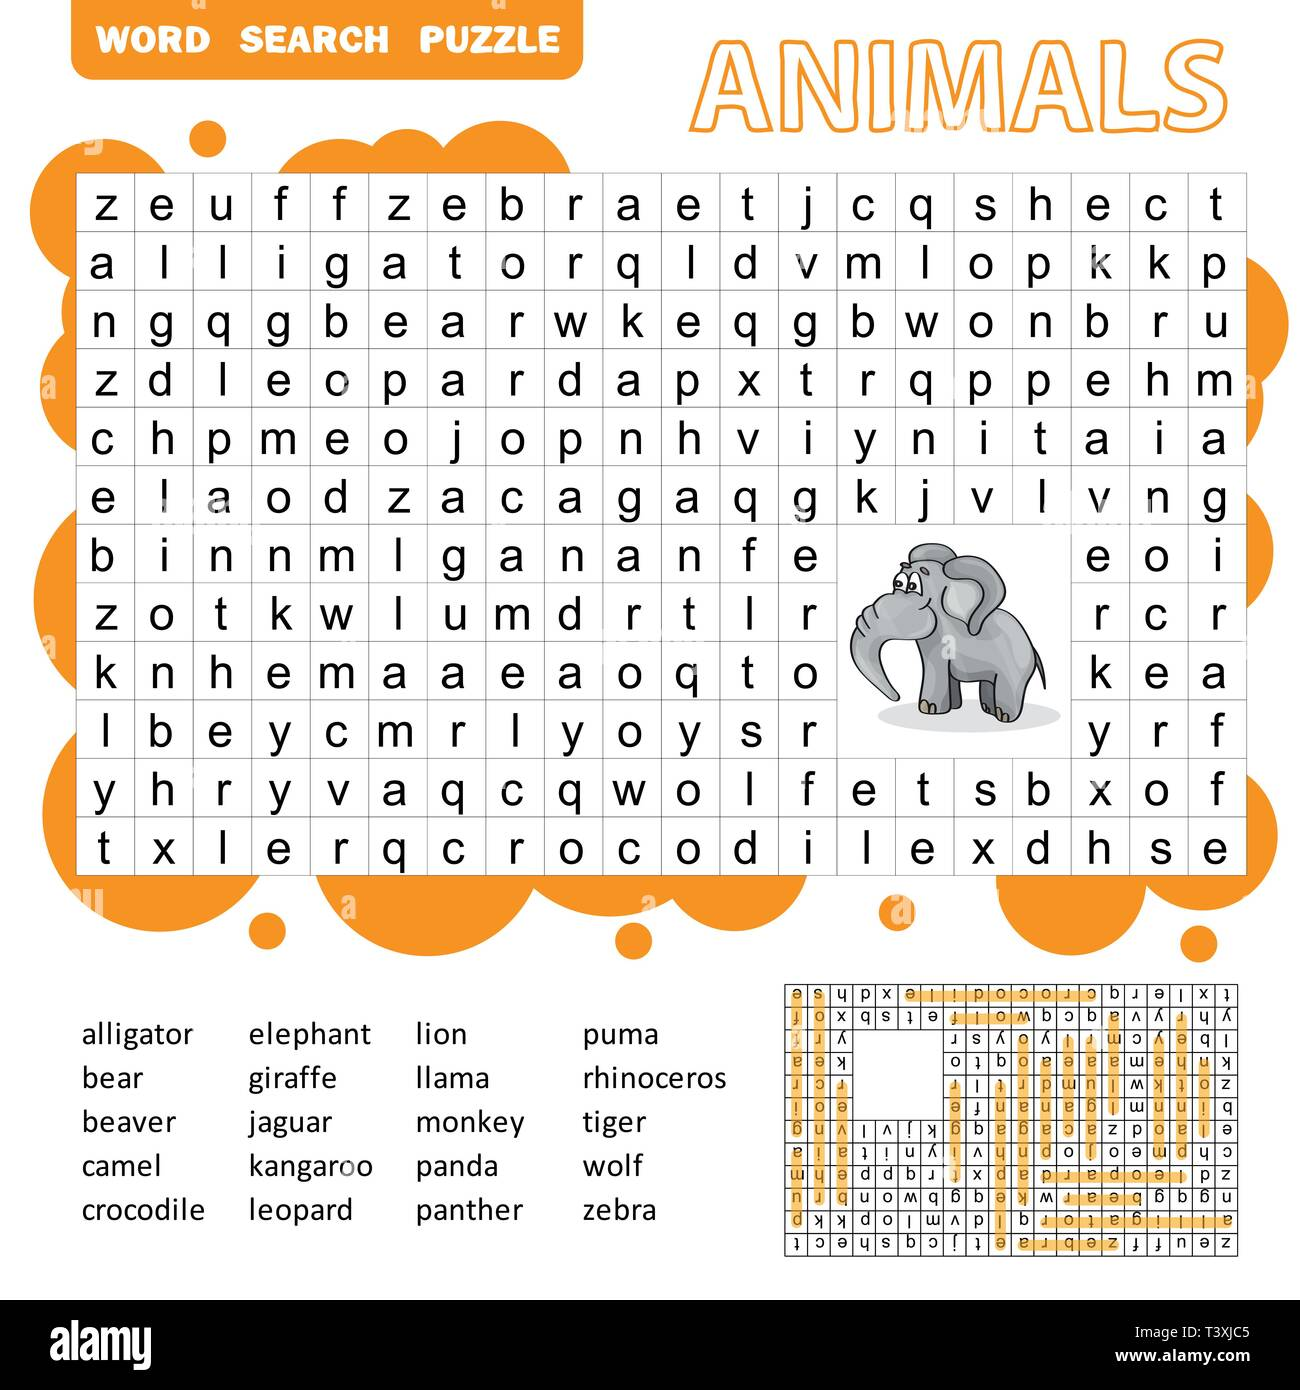 Words Search Puzzle Game Of Animals For Preschool Kids Activity Worksheet Colorful Printable